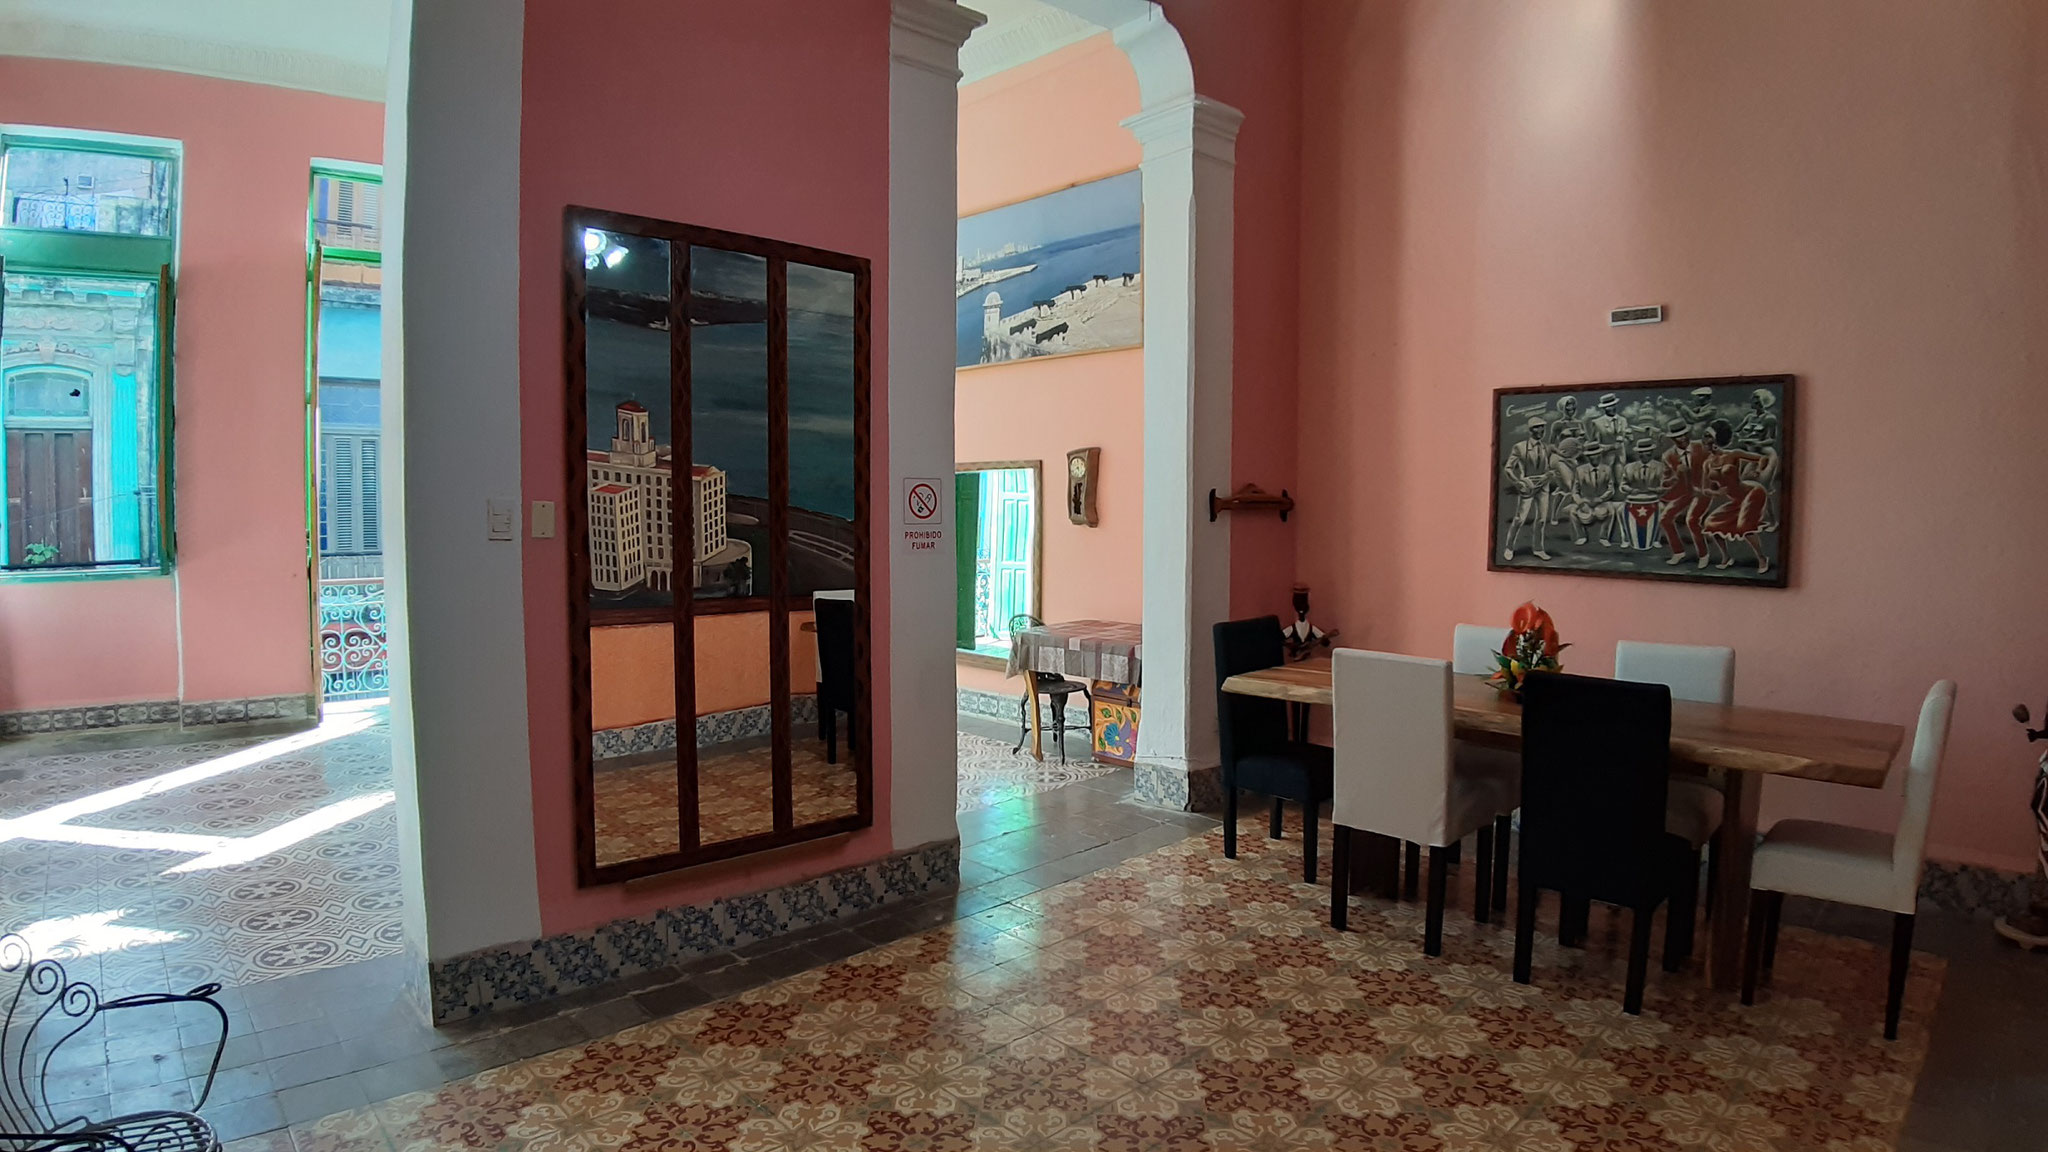 Living room of Casa Soly y Salsa and dance room of dance school Salsa con Clase